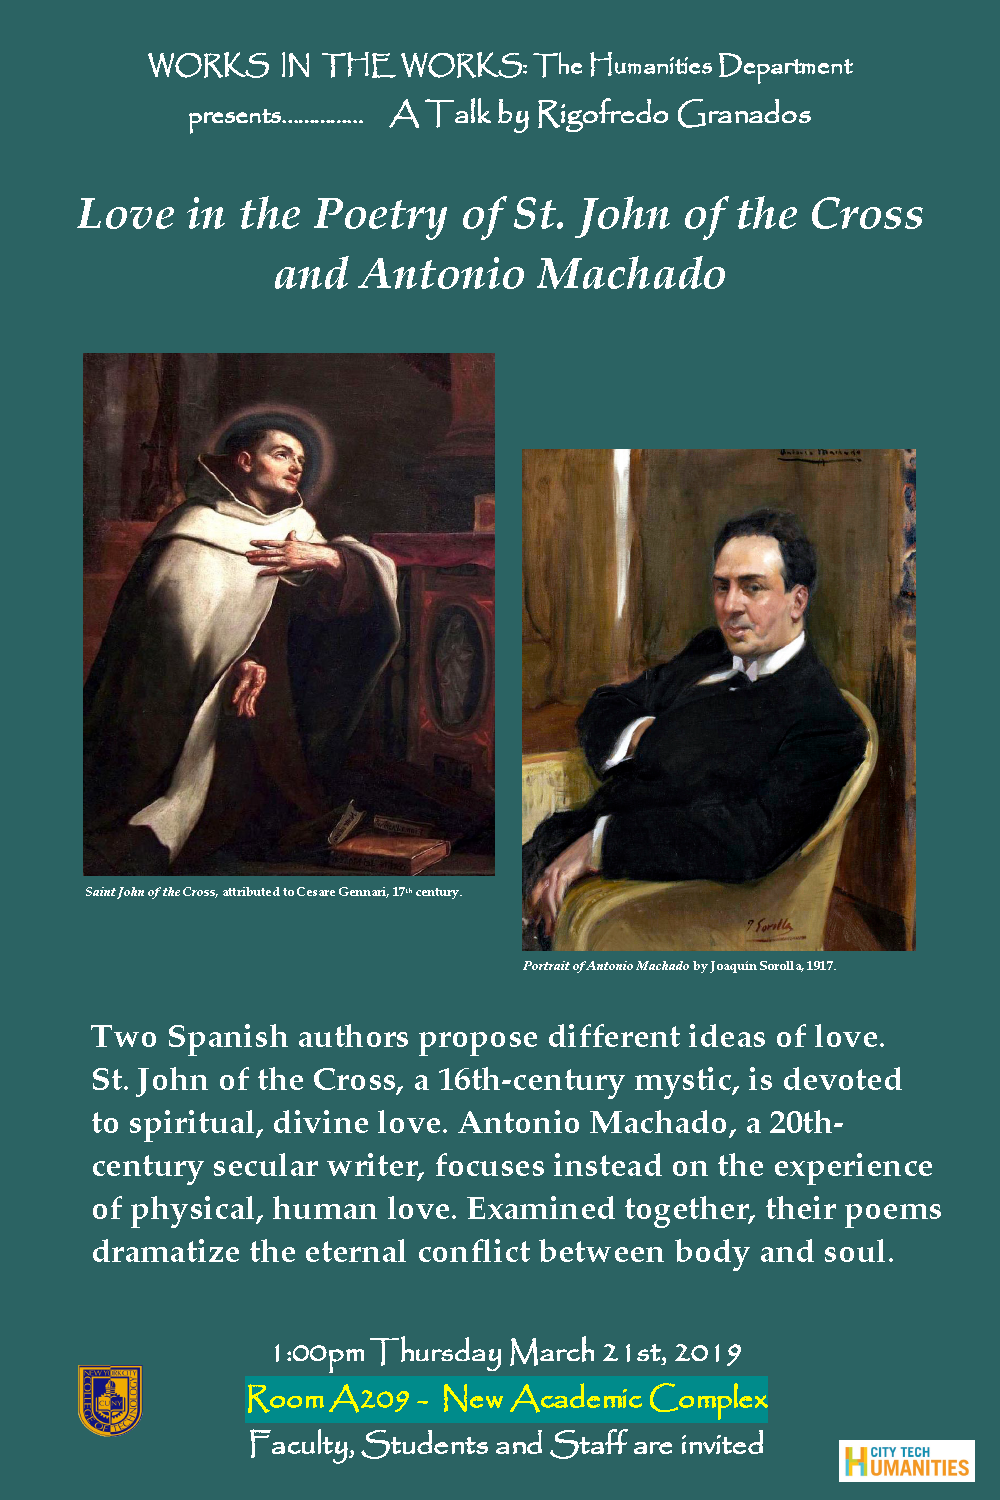 Love in the Poetry of St. John of the Cross and Antonio Machado 4